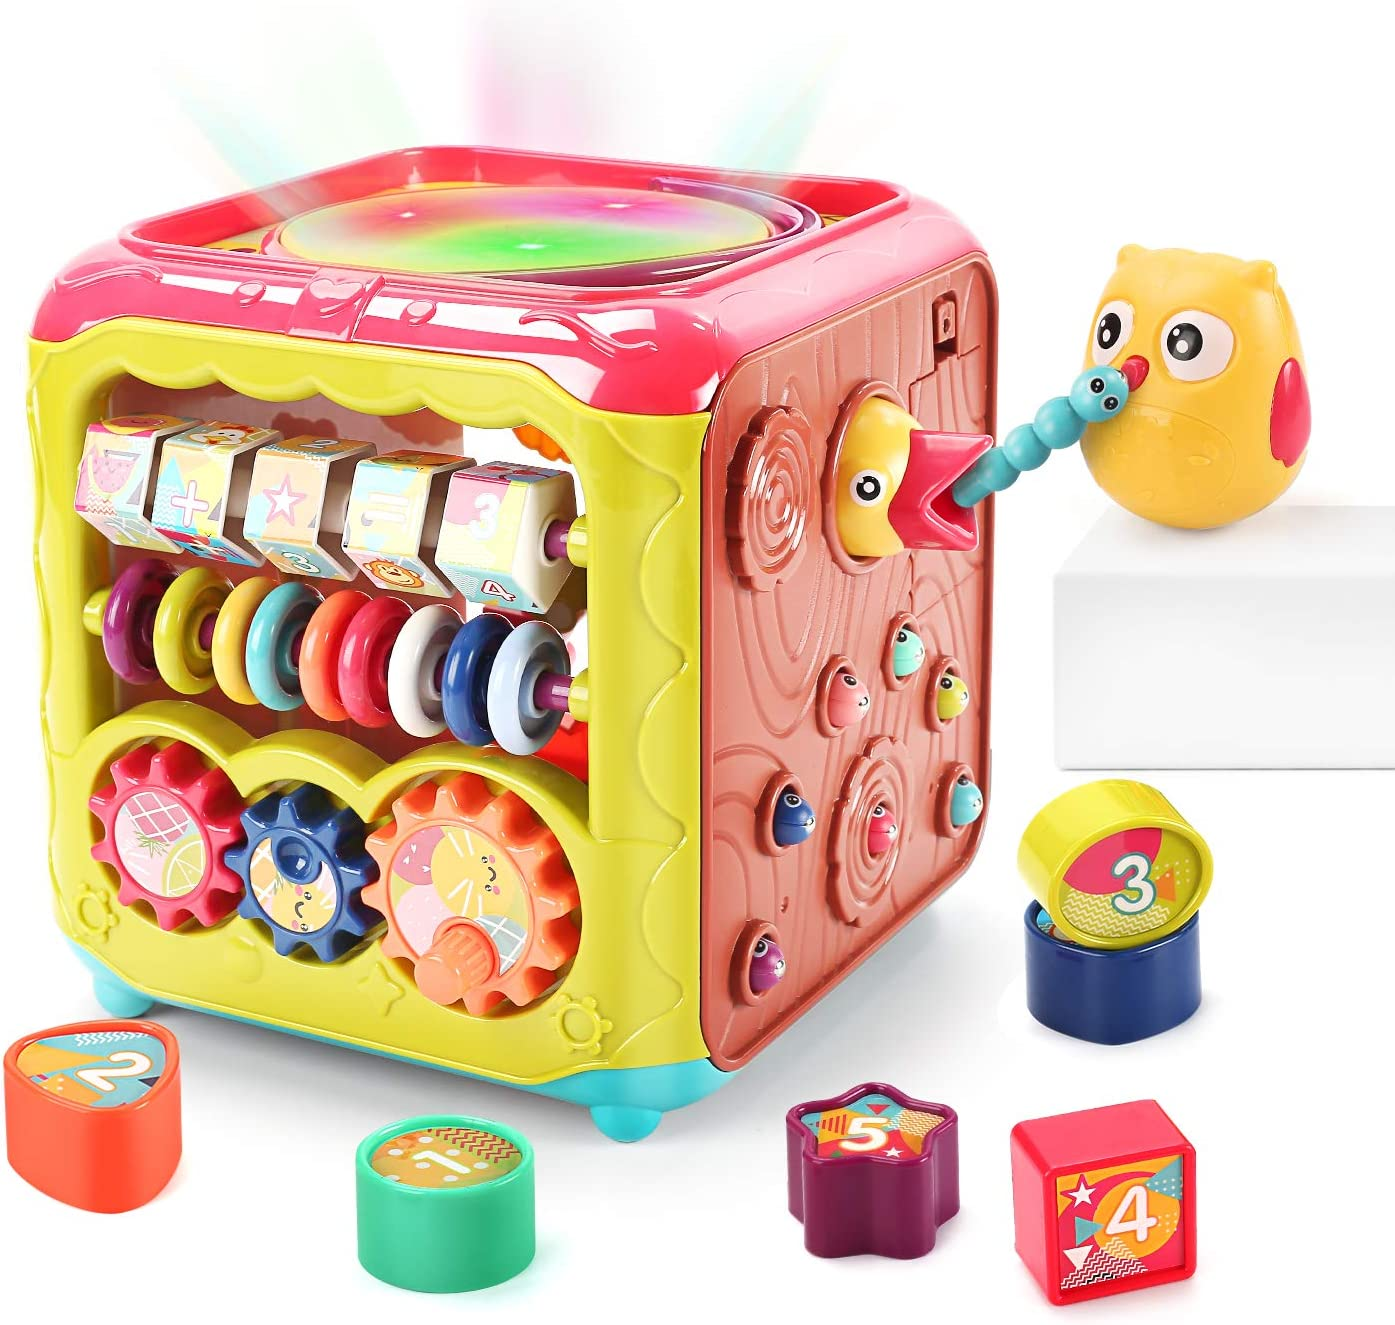 CUTE STONE Baby Activity Cube Toy,6 in 1 Multi-Functional Learning Cube Toys with Music /& Light,Shape Sorter,Play Drum,Gears,Baby Early Educational Play Cube Centers Gifts for Infant Kids Boys Girls